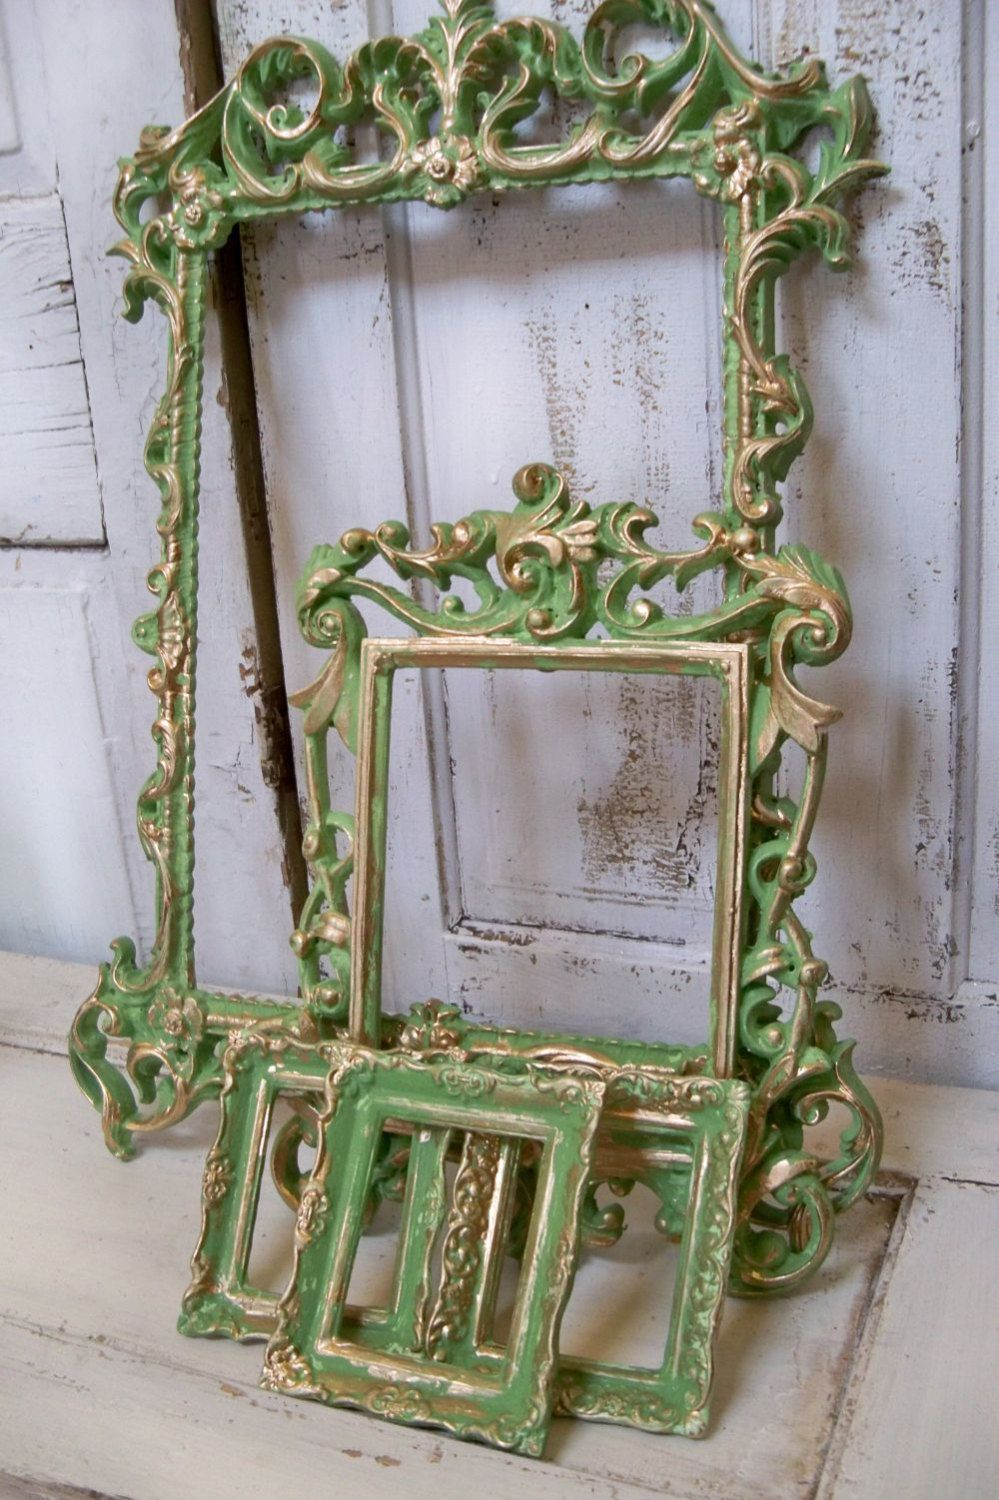 Ornate green frame grouping vintage hand painted shabby chic wall ...